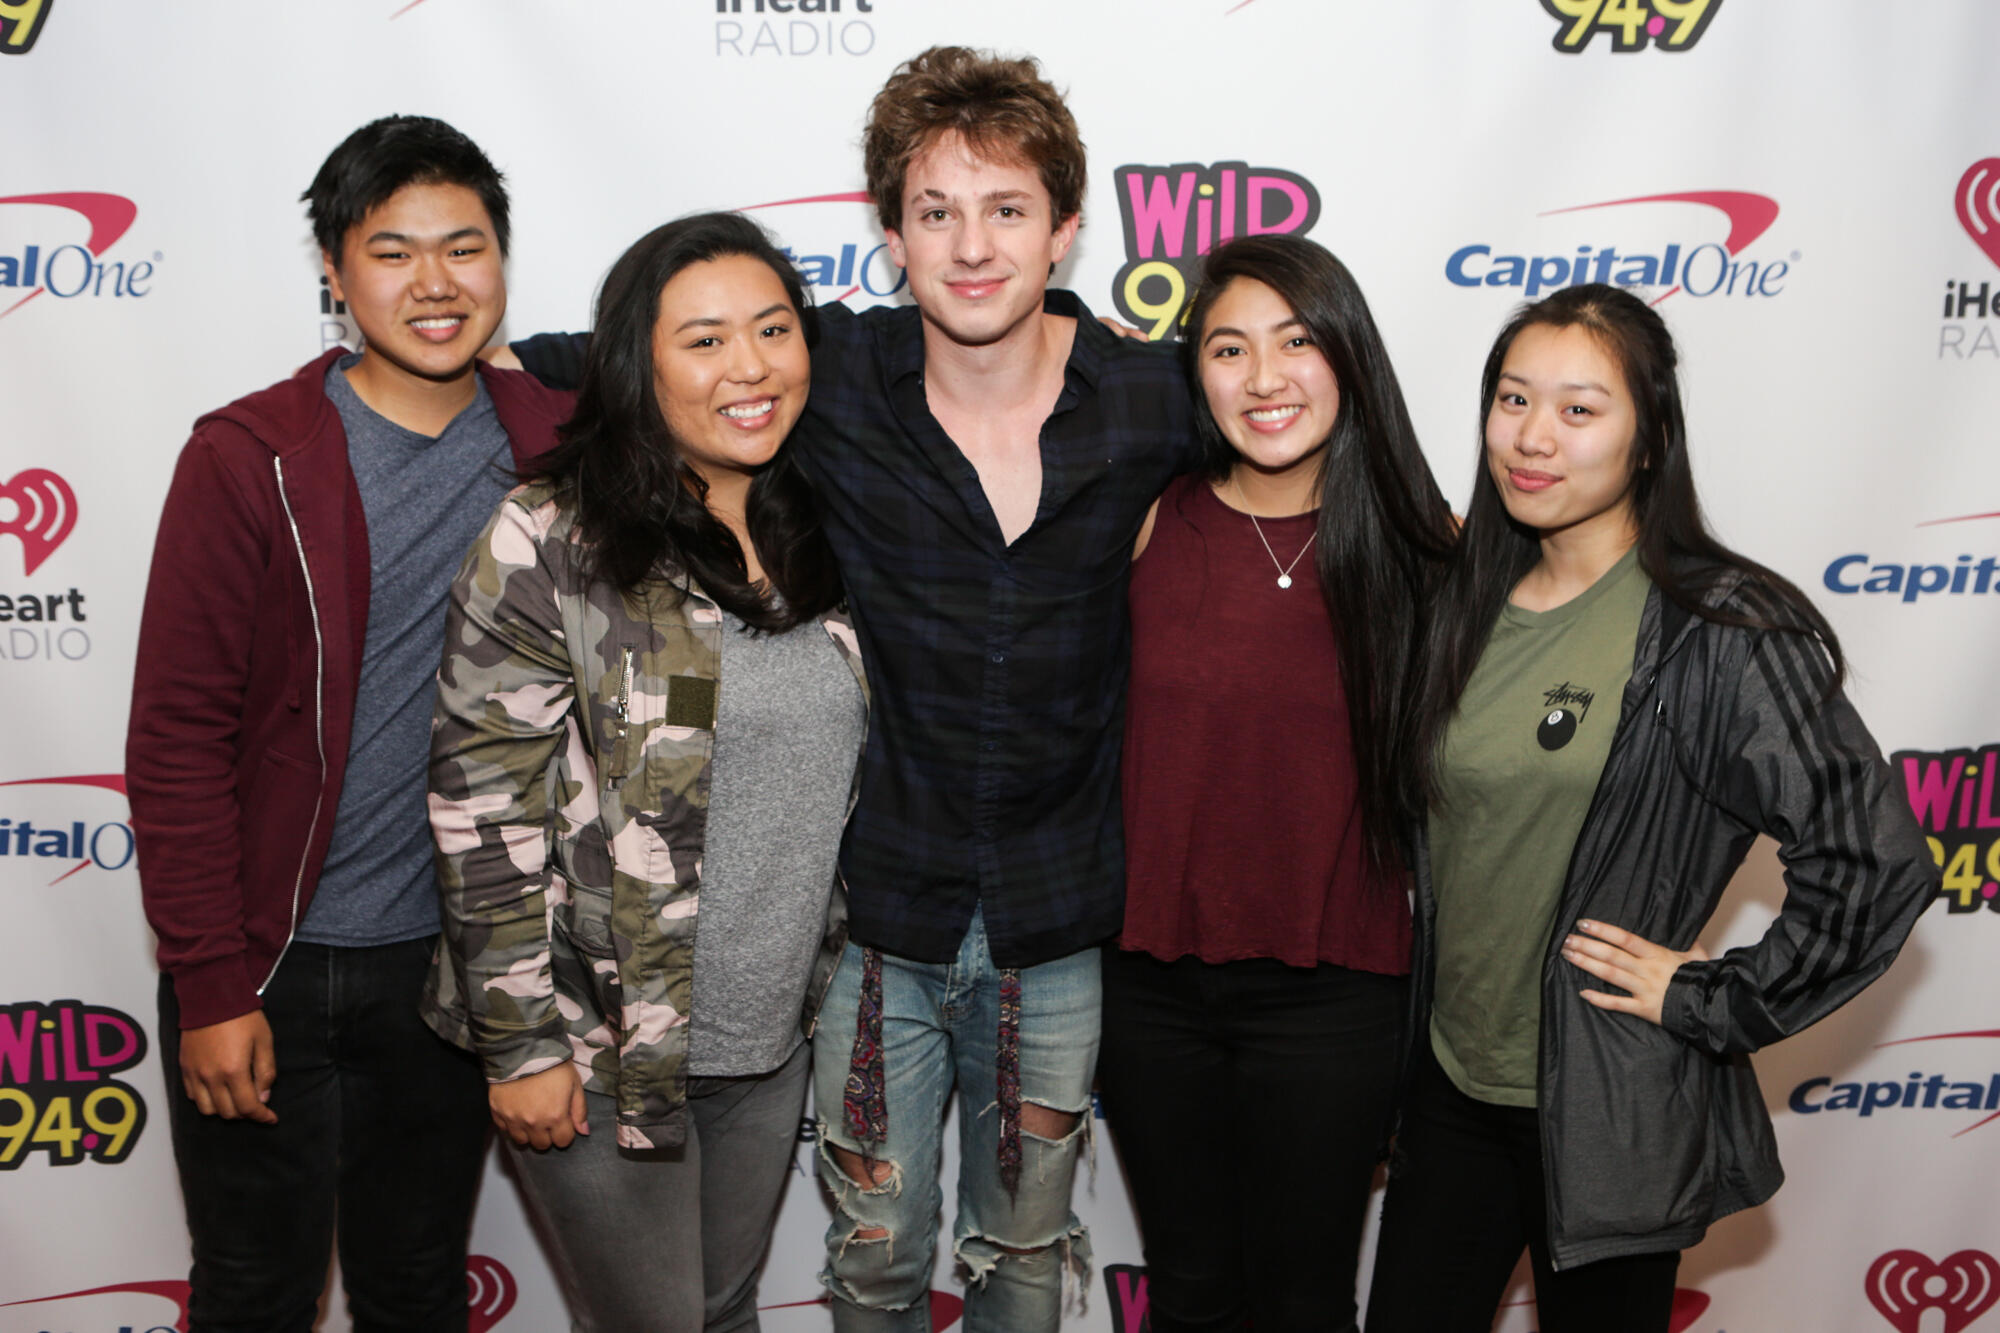 Charlie puth meet and greet at jingle ball wild 949 kristyandbryce Choice Image